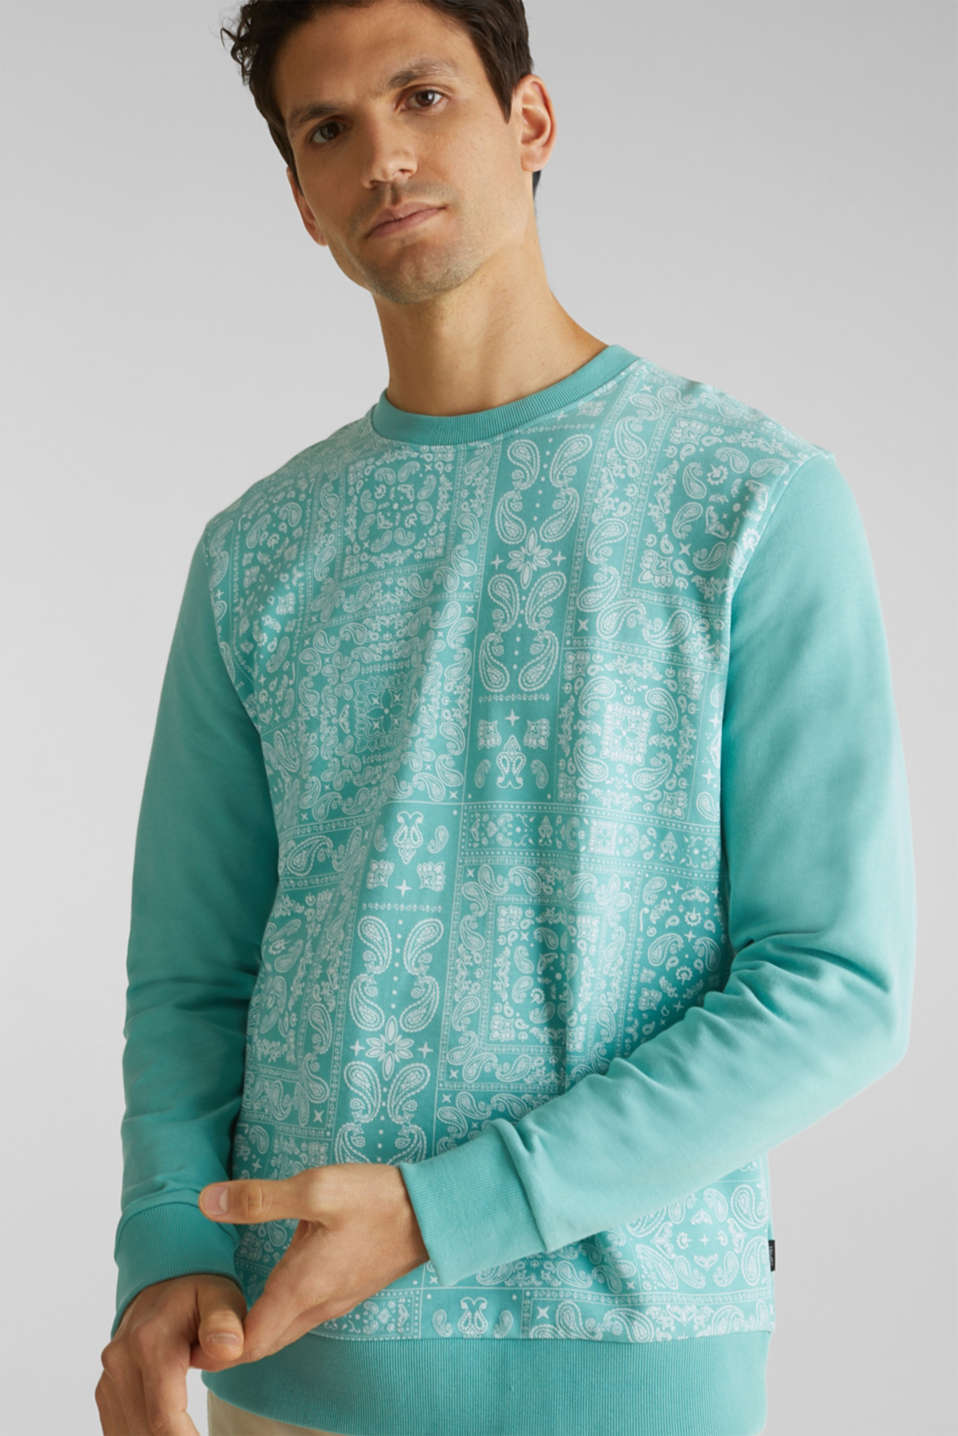 Sweatshirt with a paisley print, 100% cotton, DUSTY GREEN 4, detail image number 4